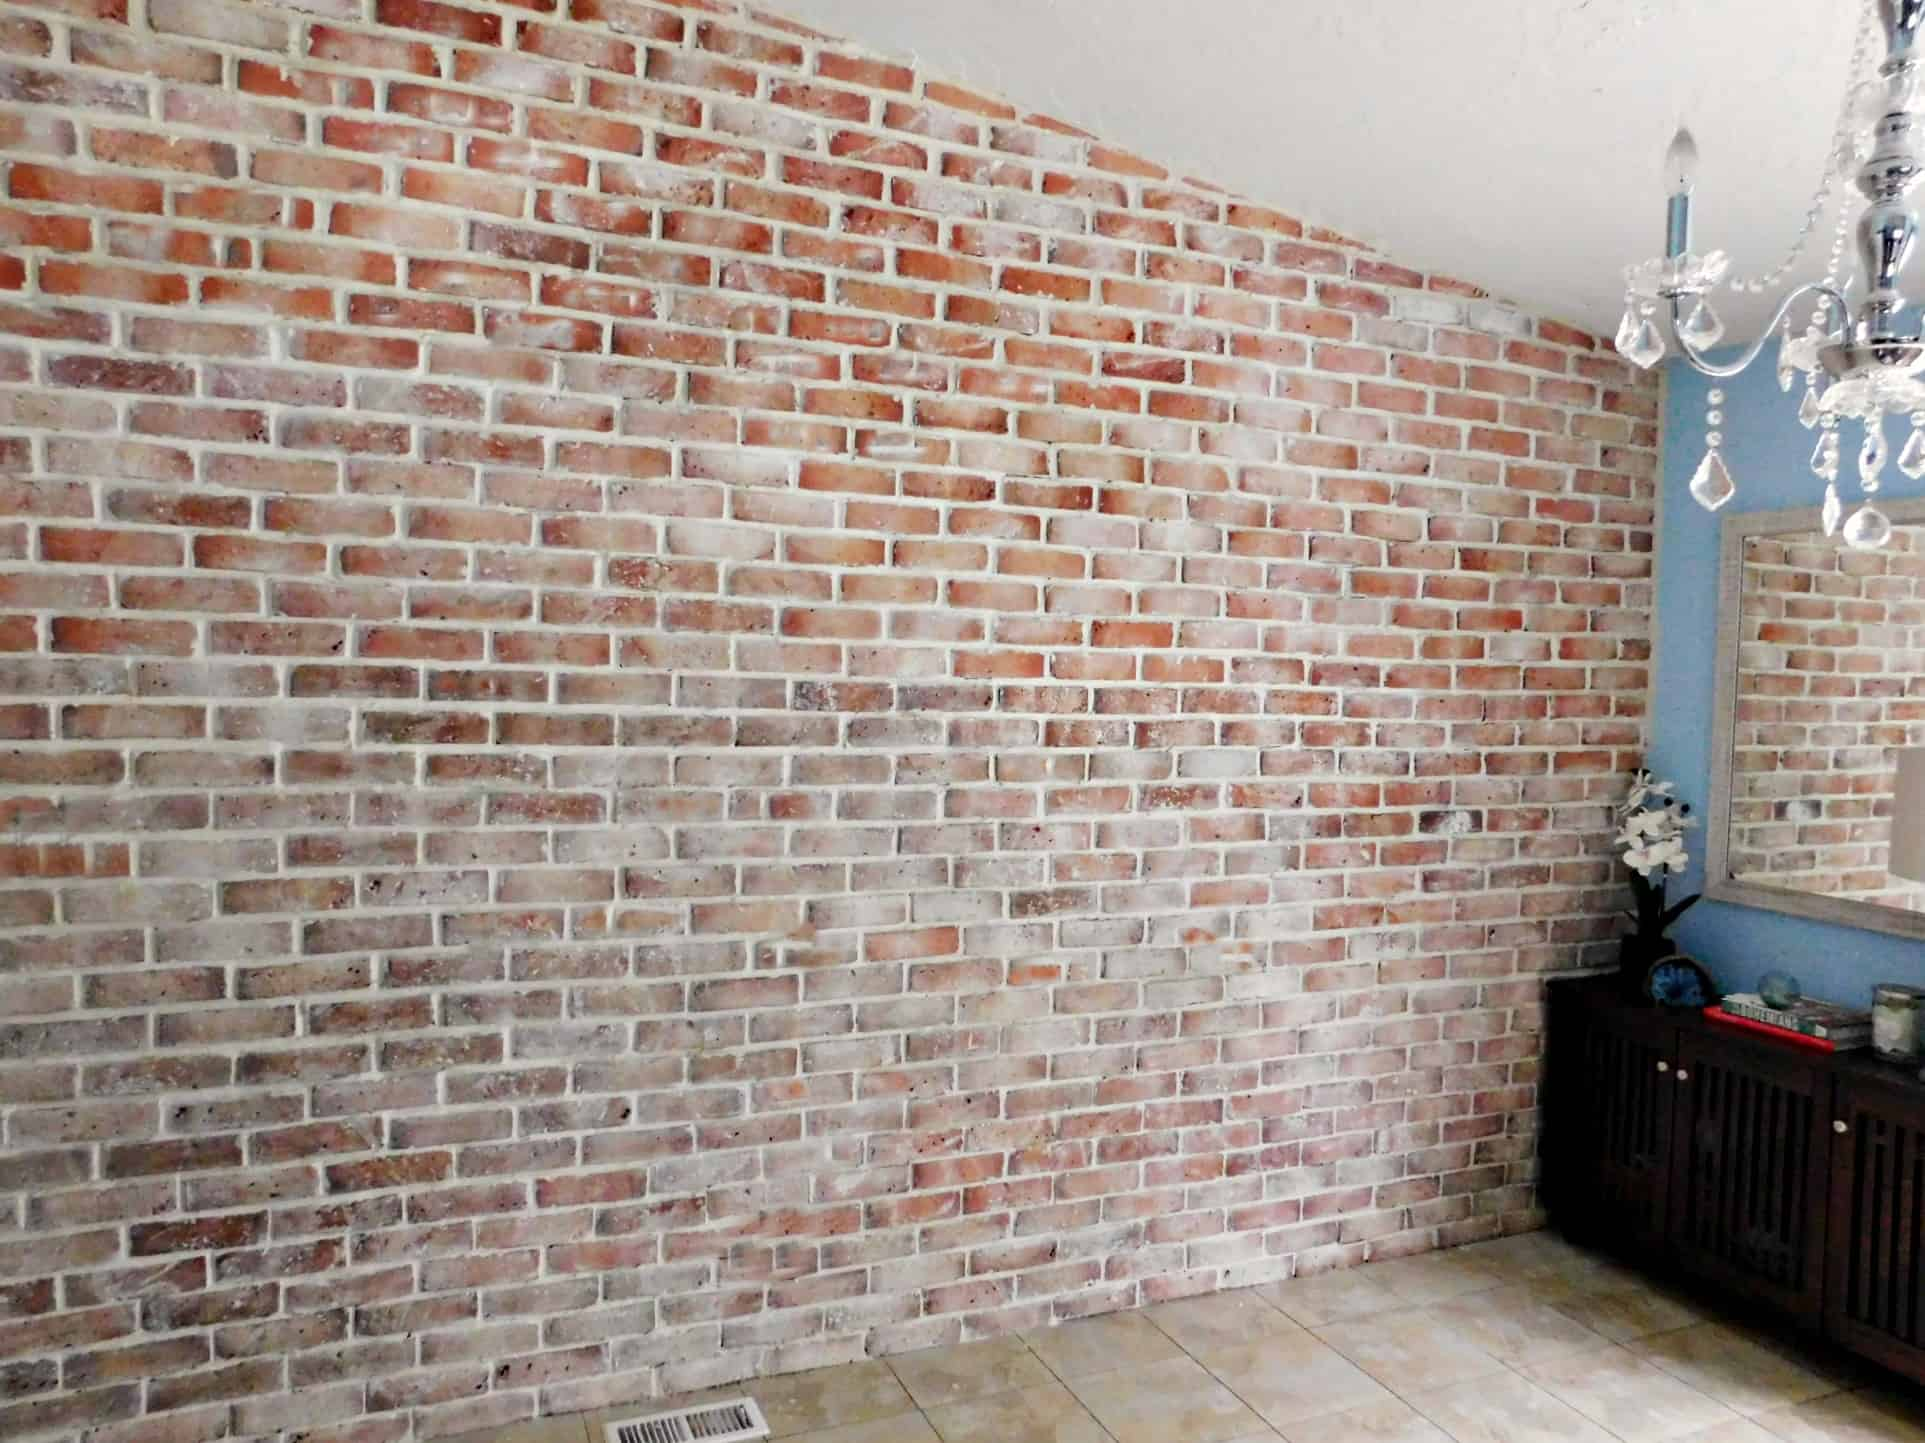 Brick Veneer Accent Wall How To Grout Brick Wall Tiles Tile Design Ideas